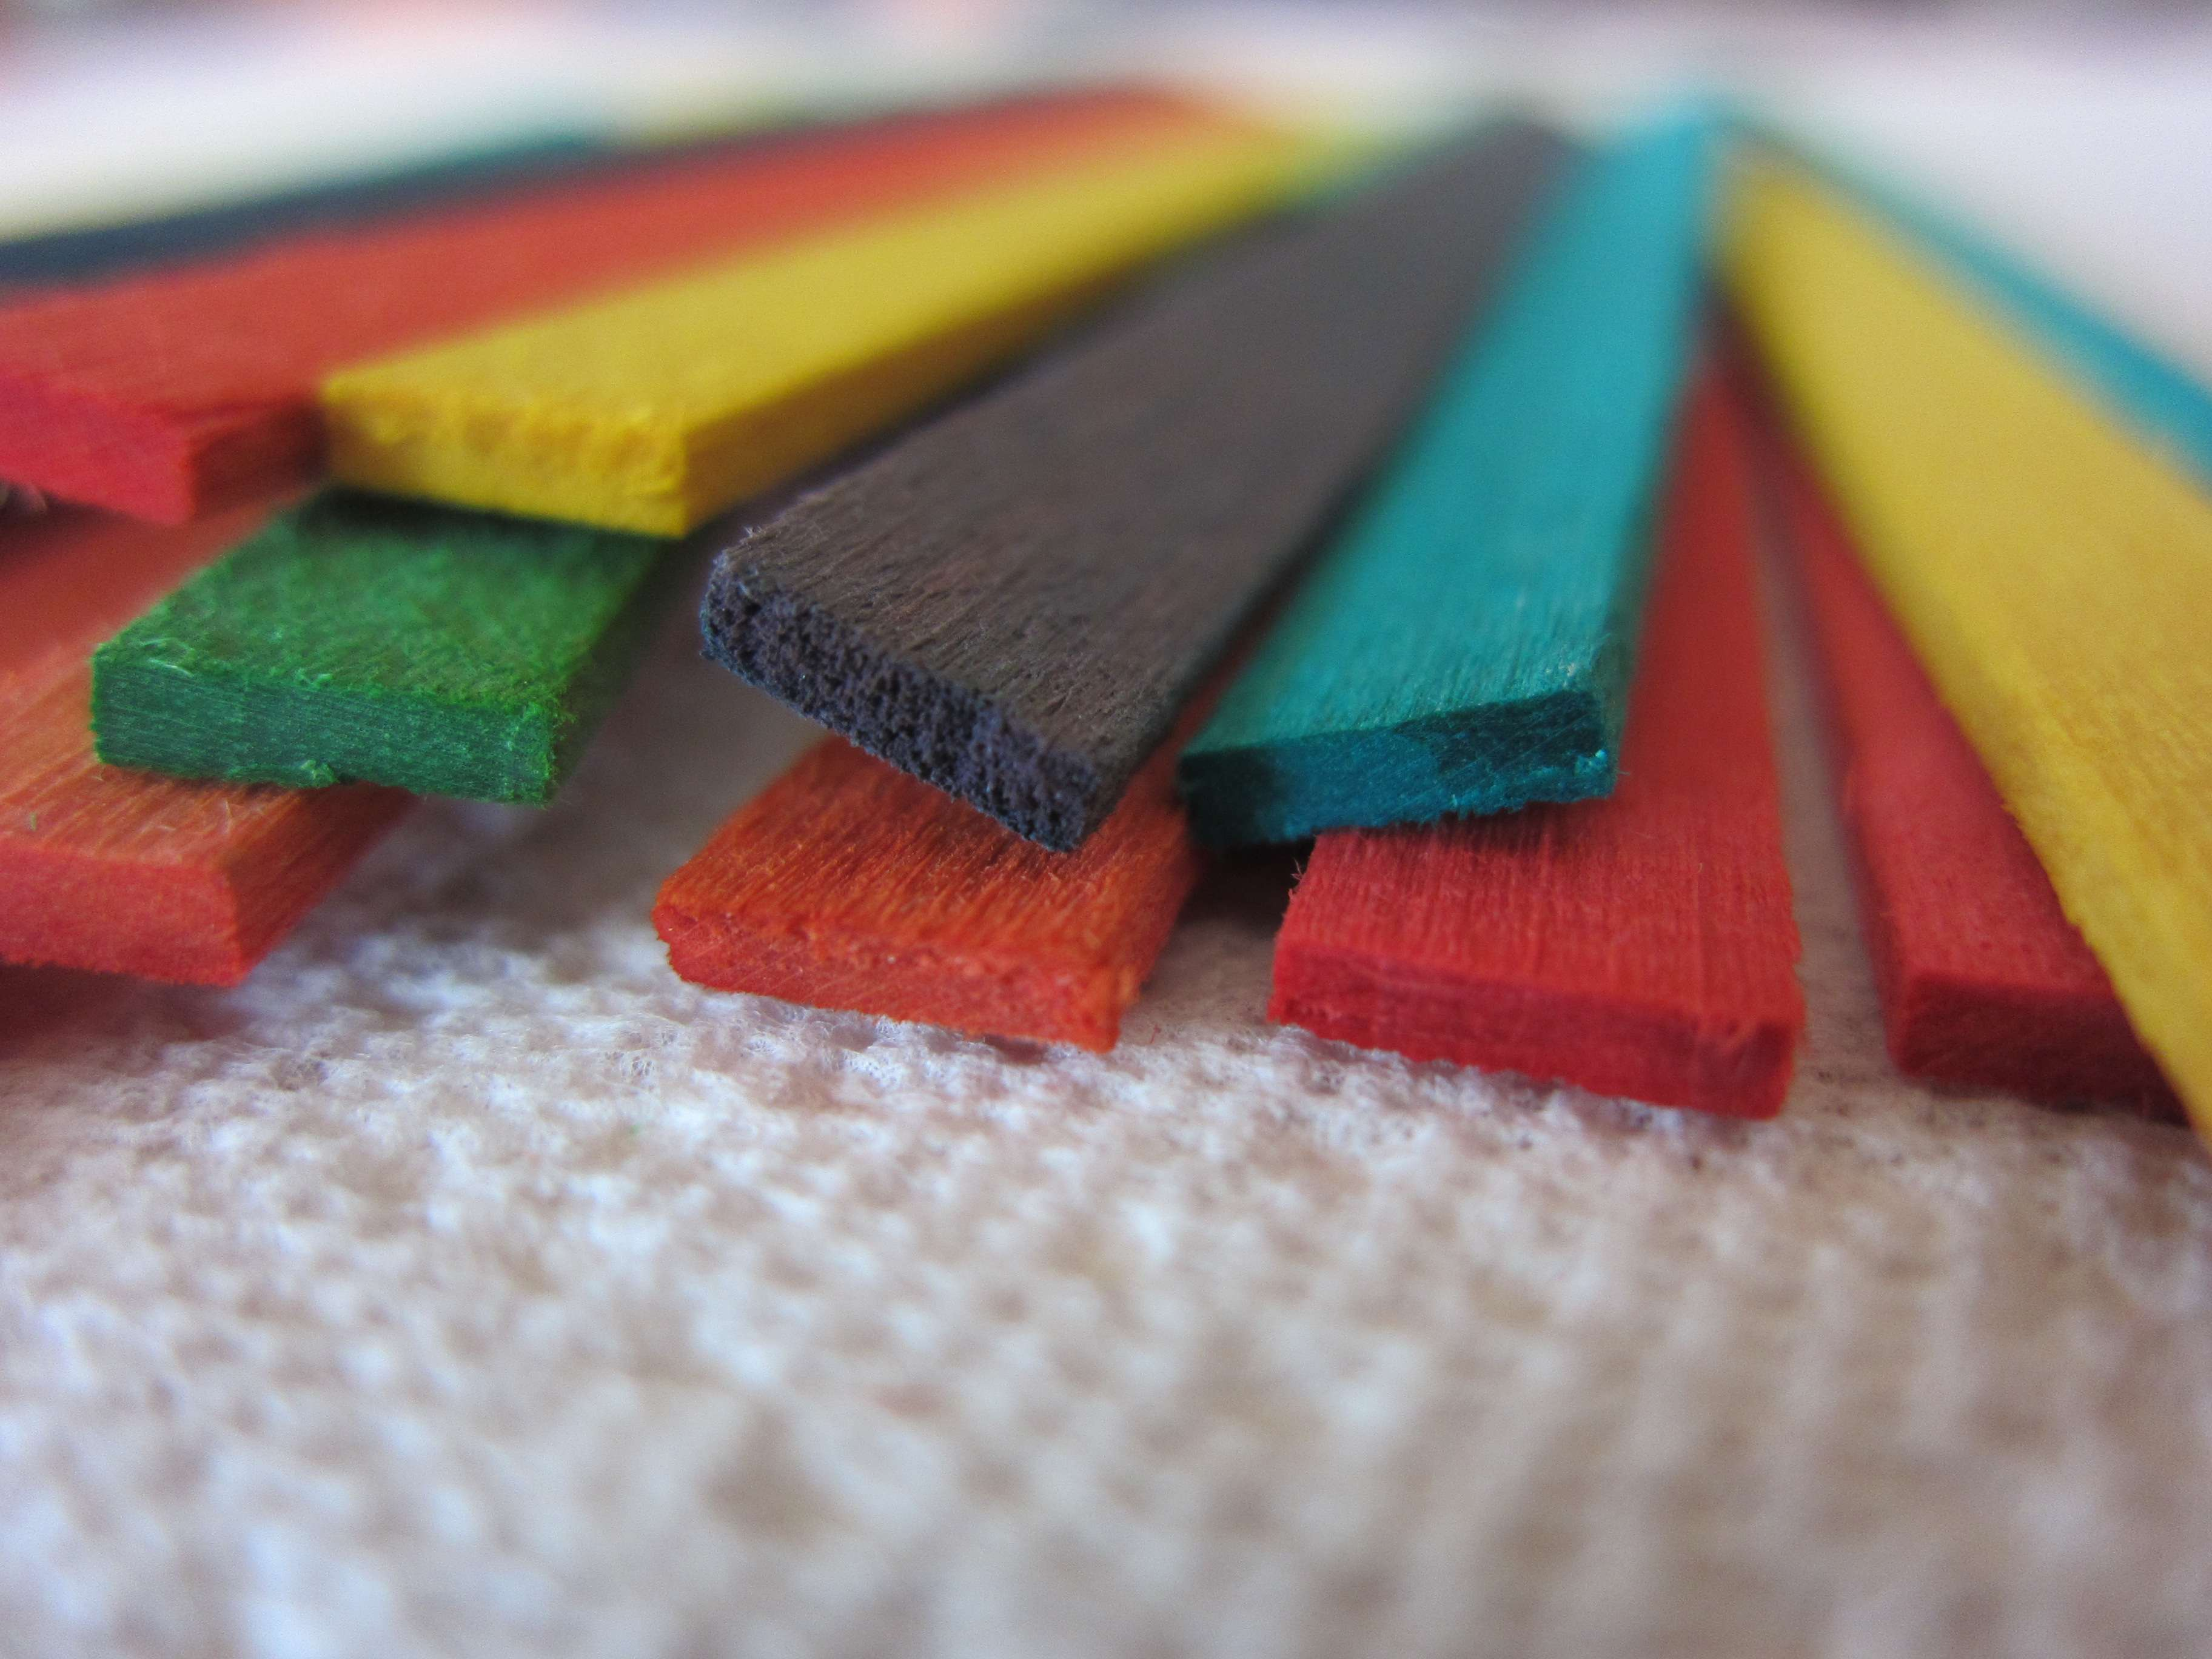 Food dyed wood ends